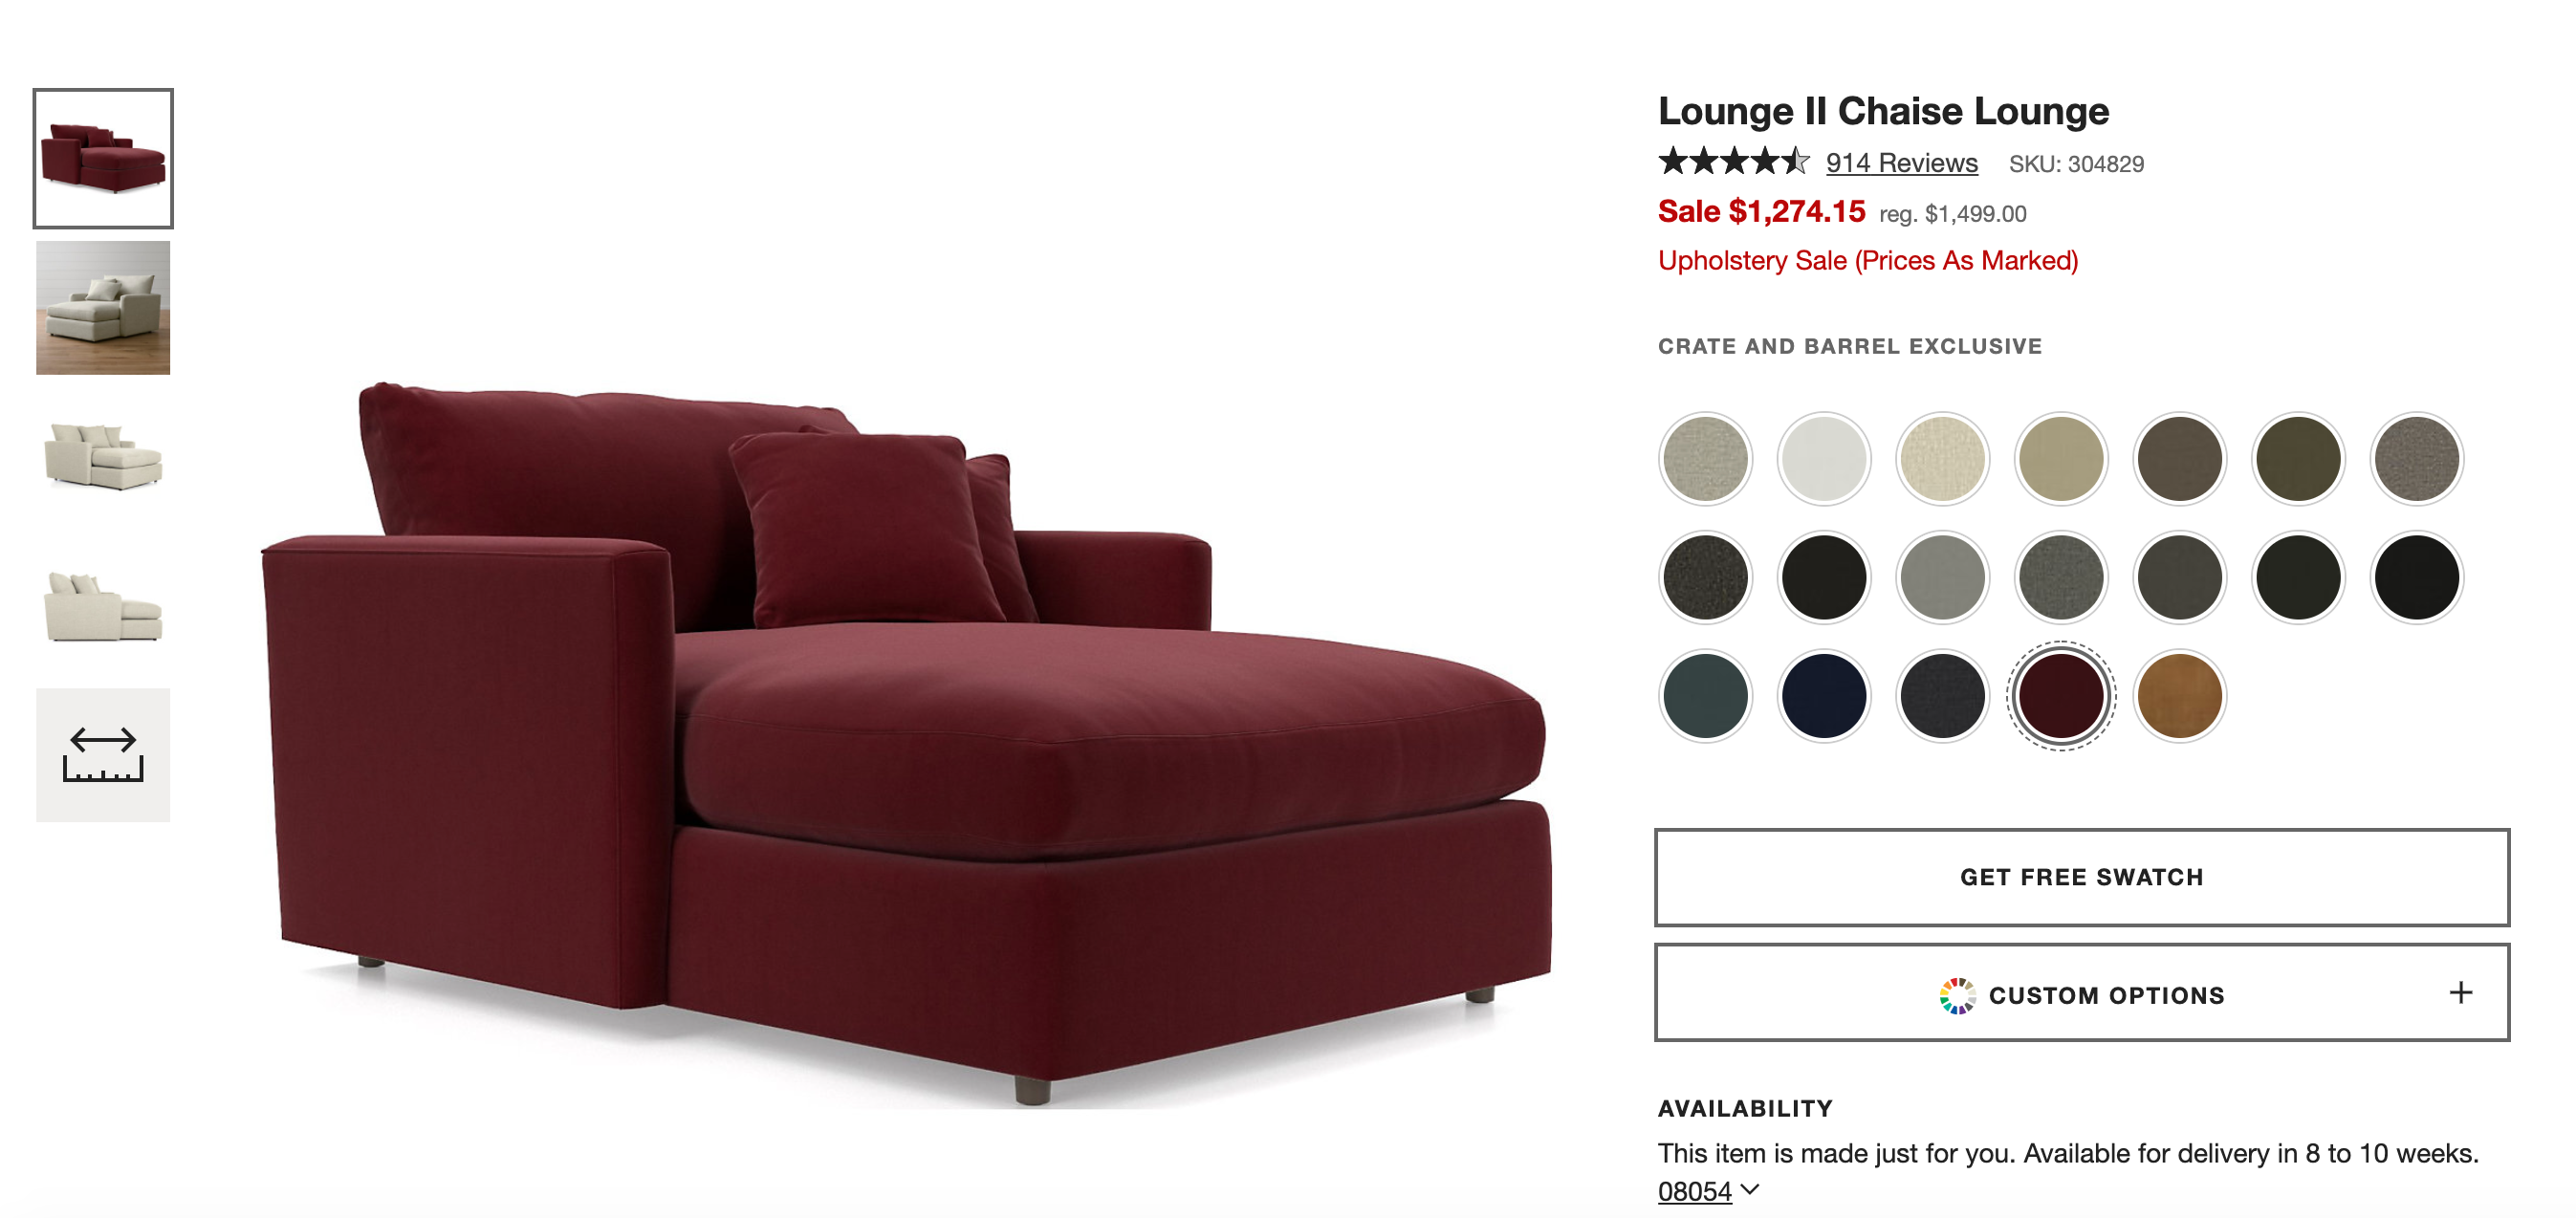 crate and barrel lounge chair from product photography software